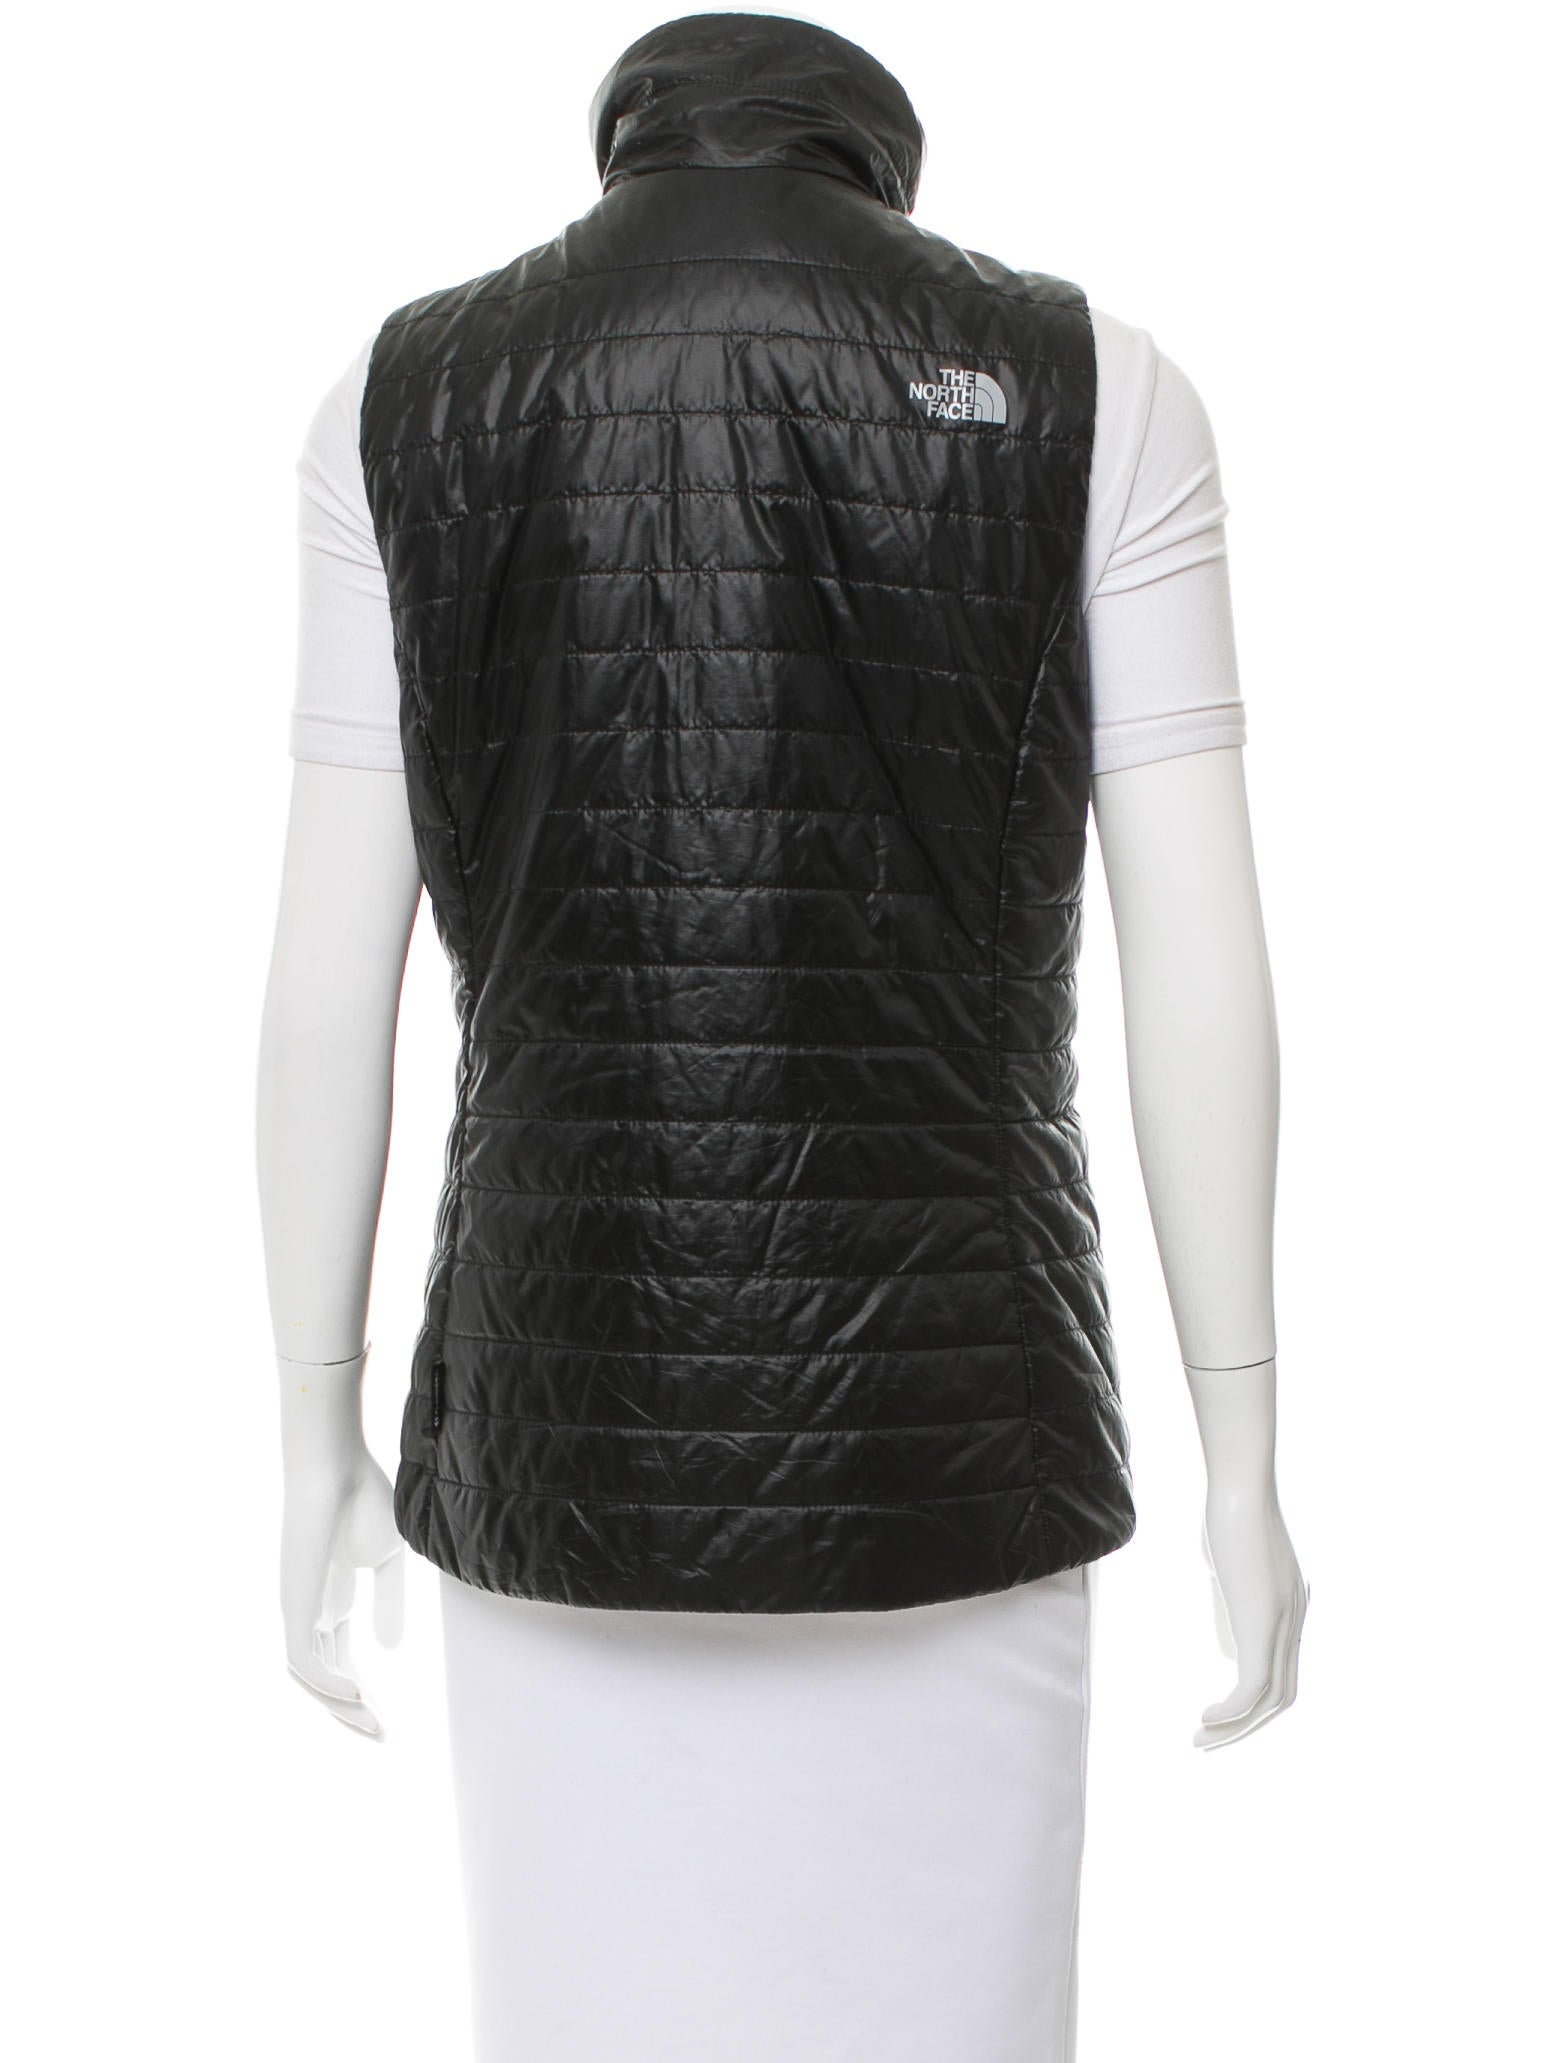 Ladies Ultra Light Puffer Vest Made of % nylon shell and with 5 oz. polyfill insulation, this puffer vest is perfect to layer on. This vest features side zippered pockets, stand-up collar, open waist hem and a form flattering fit.